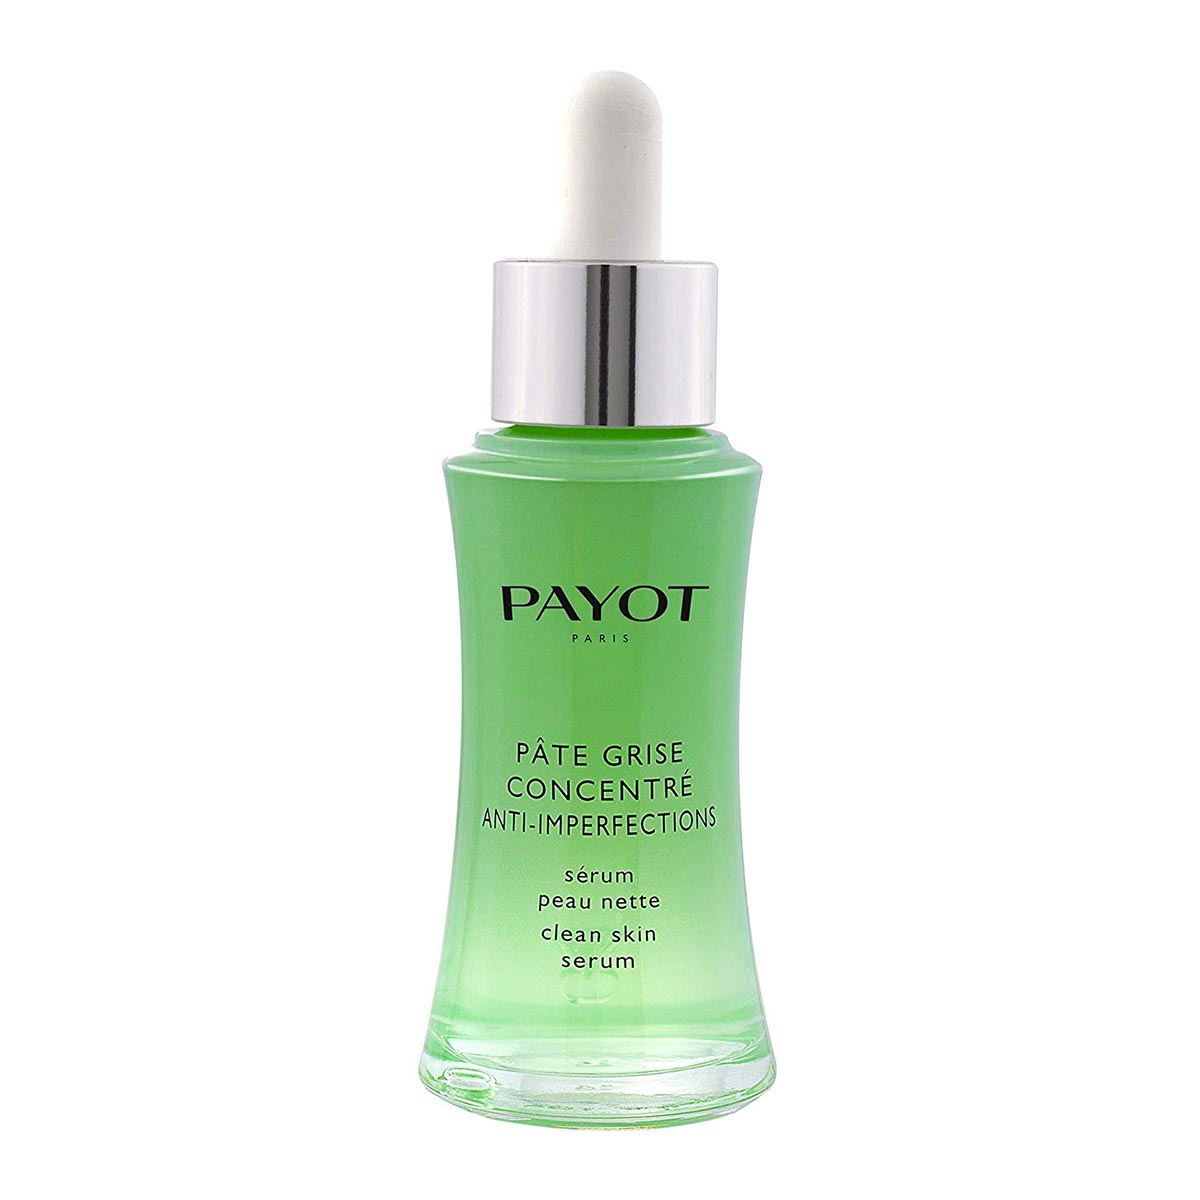 Payot pate grise concentre anti imperfections serum 30ml